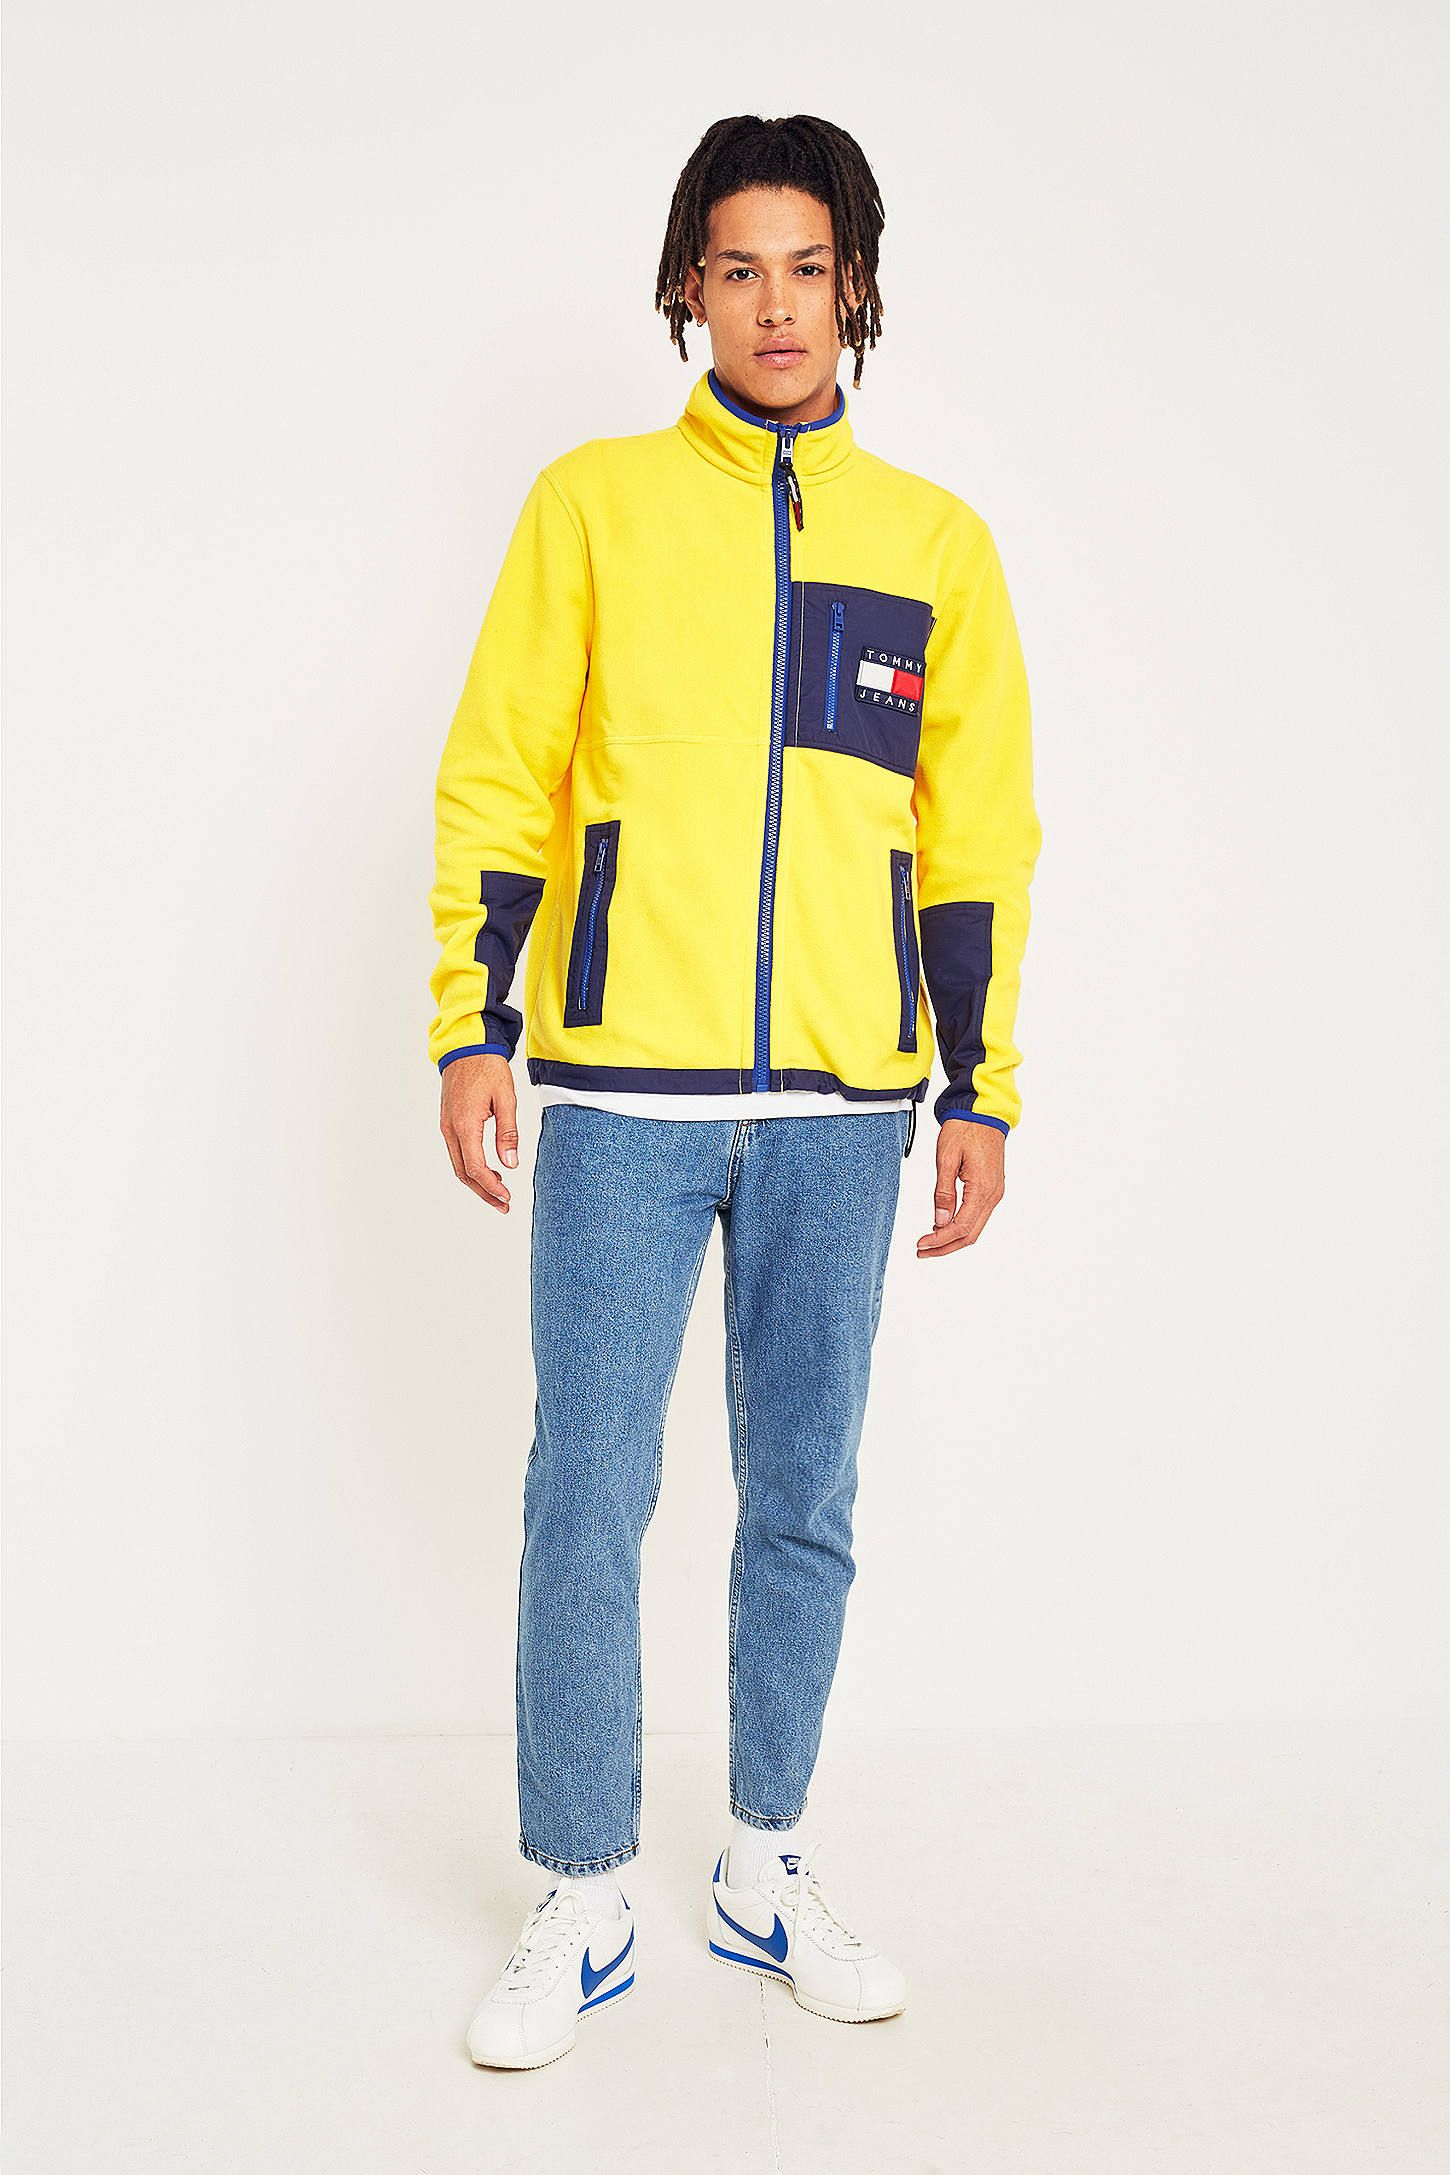 3a9e26642 Shop Tommy Jeans '90s Freesia Fleece Jacket at Urban Outfitters today. We  carry all the latest styles, colours and brands for you to choose from  right here.